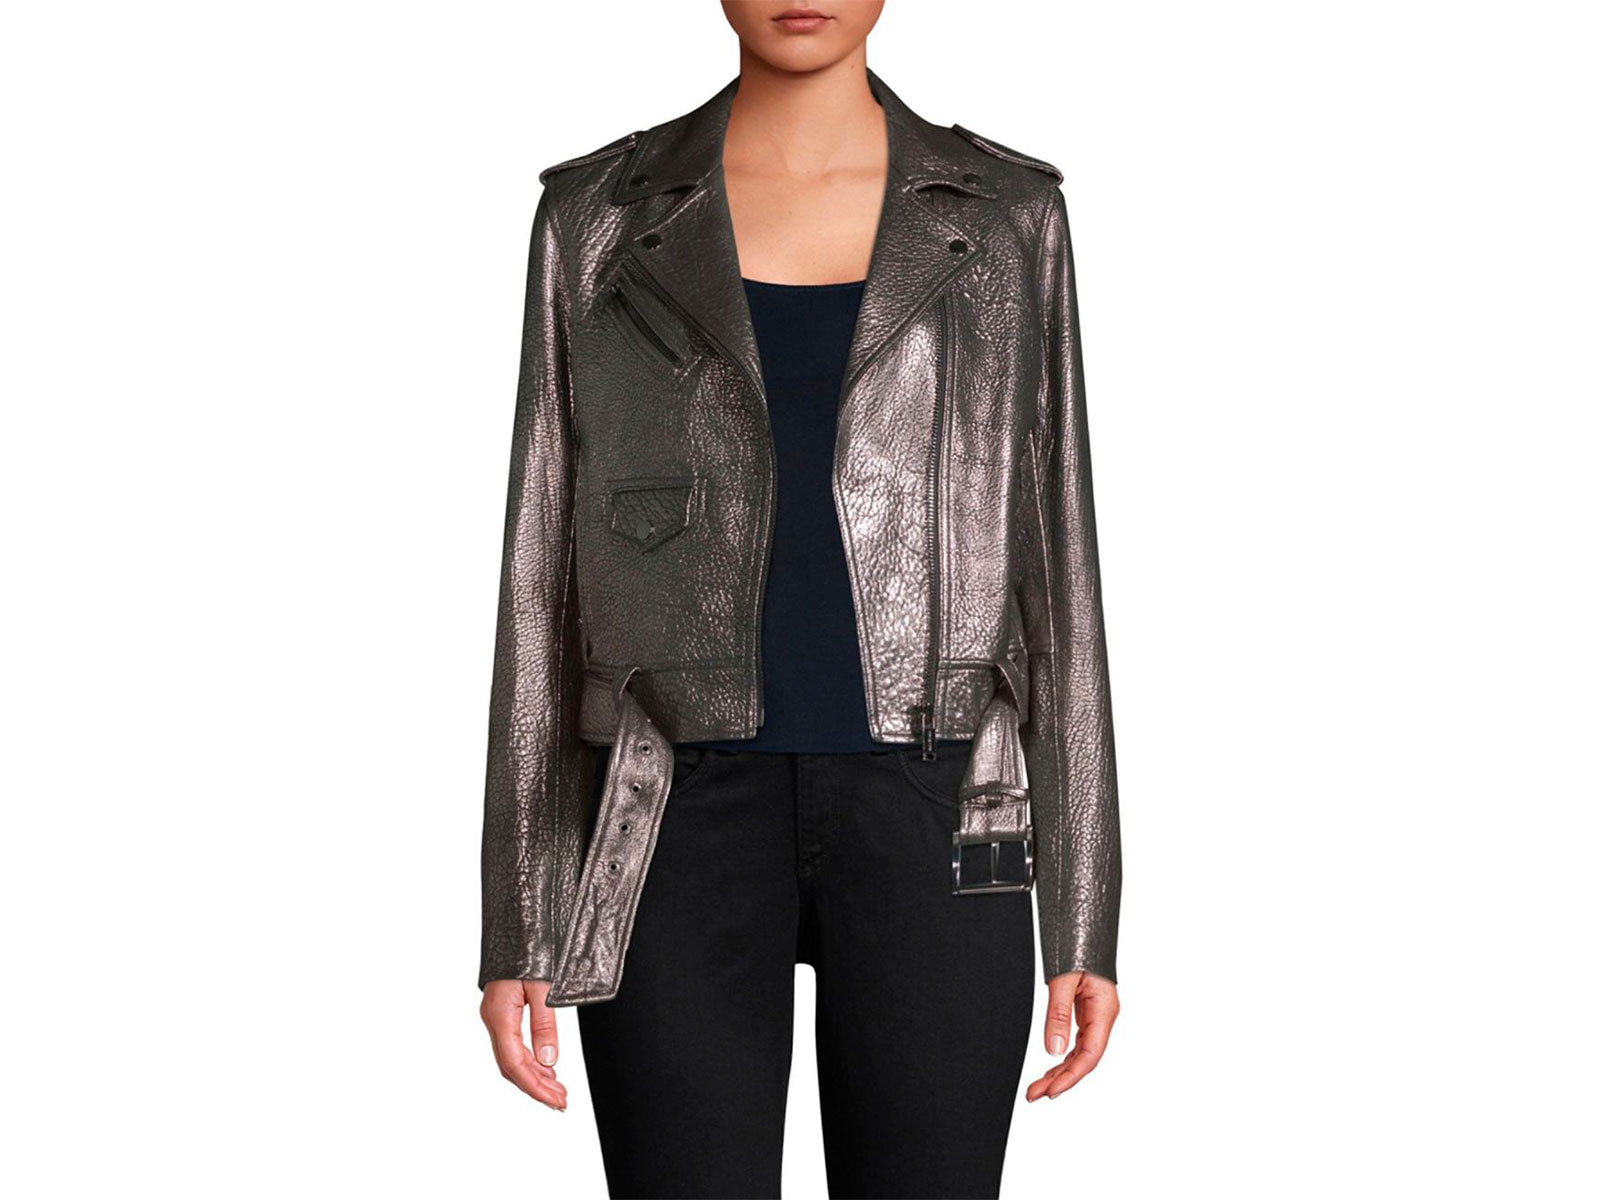 Michael Kors Metallic Moto Jacket